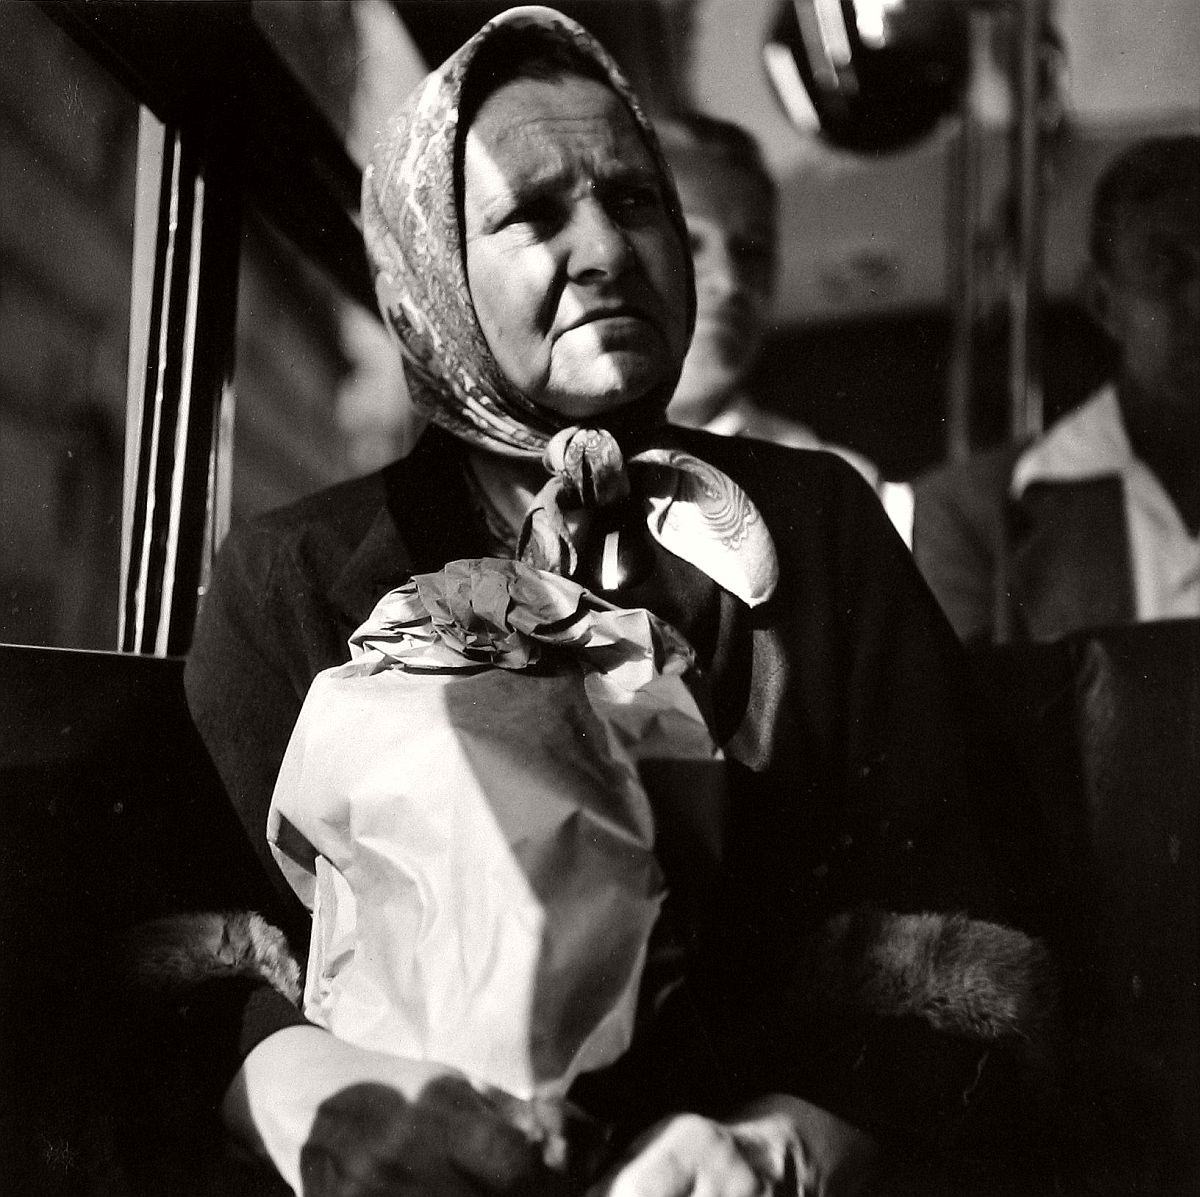 Woman on bus with shopping bag, 1949